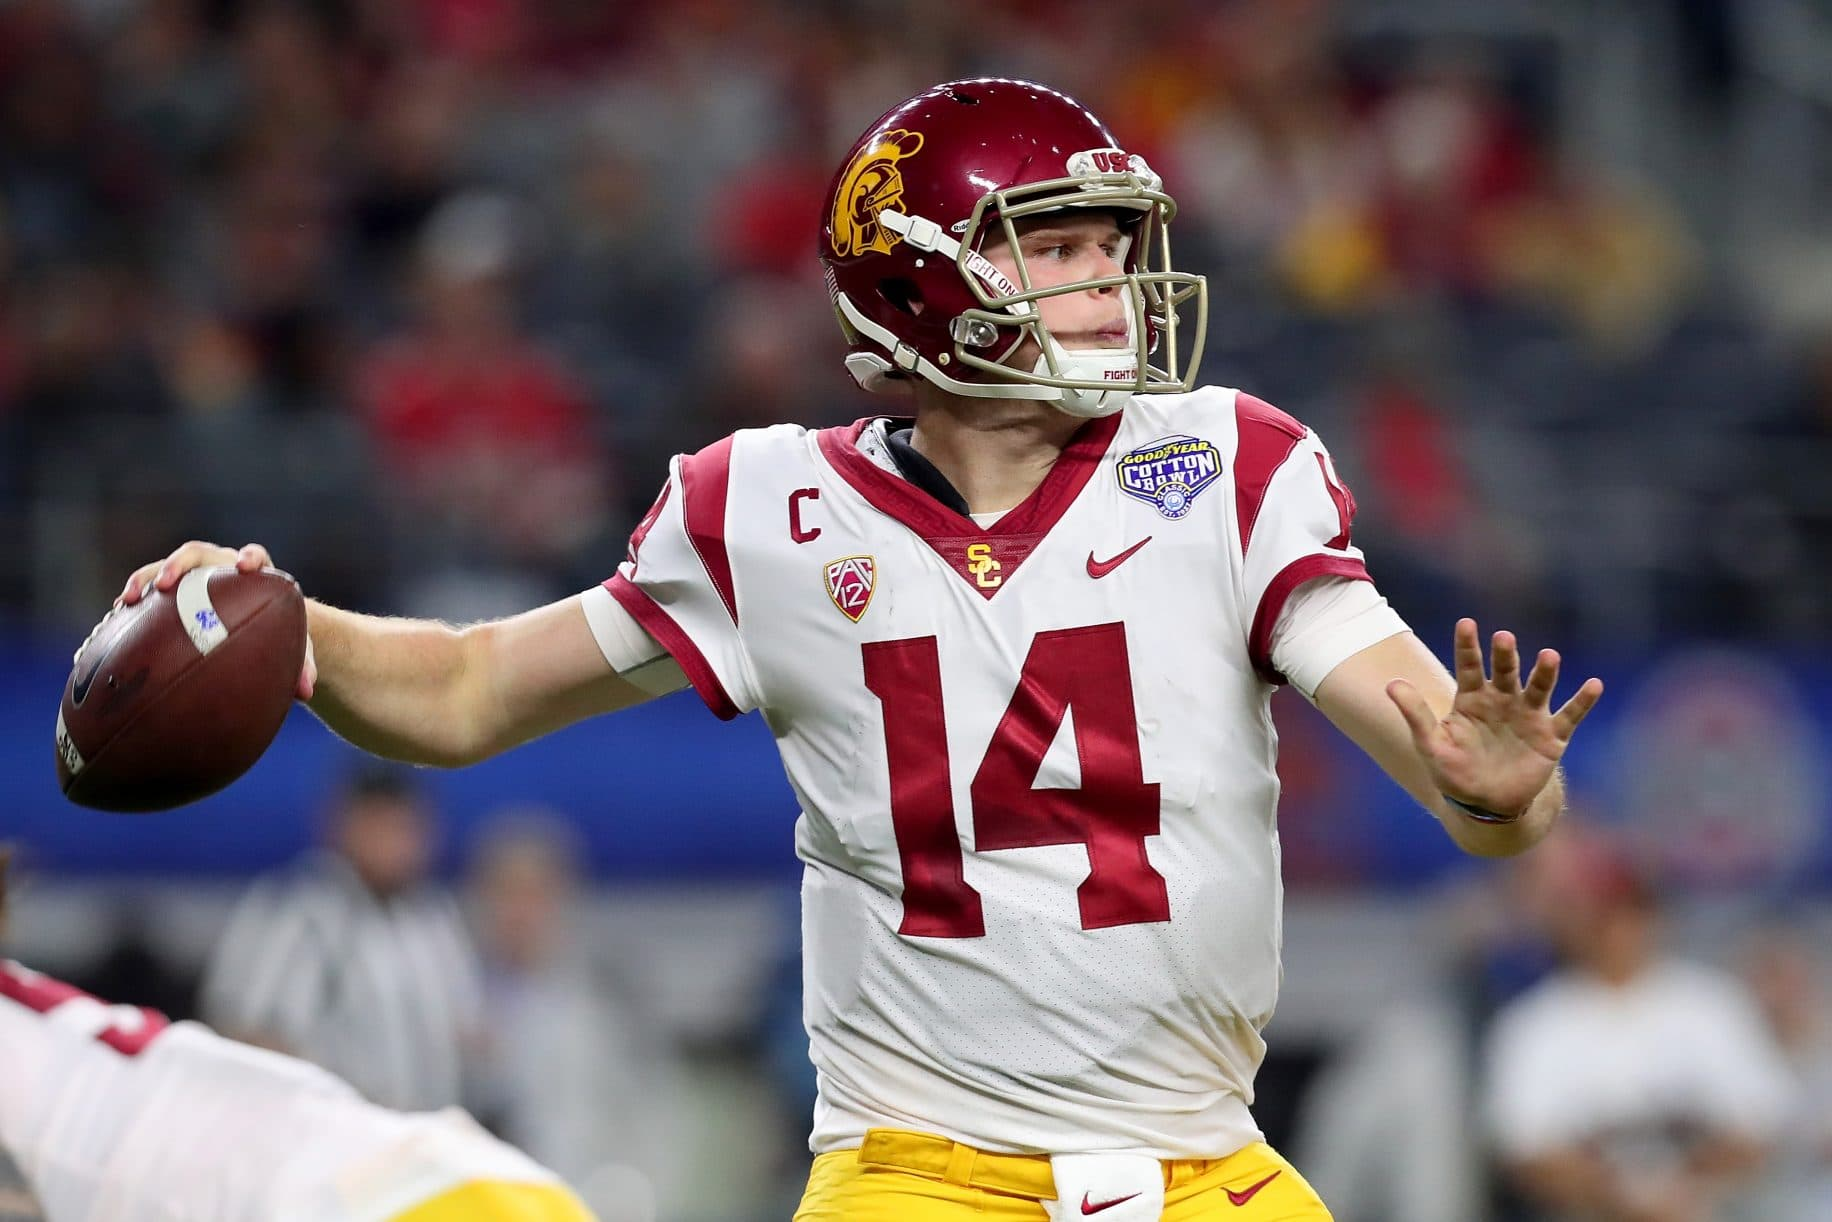 Sam Darnold says it would be amazing if Giants drafted him